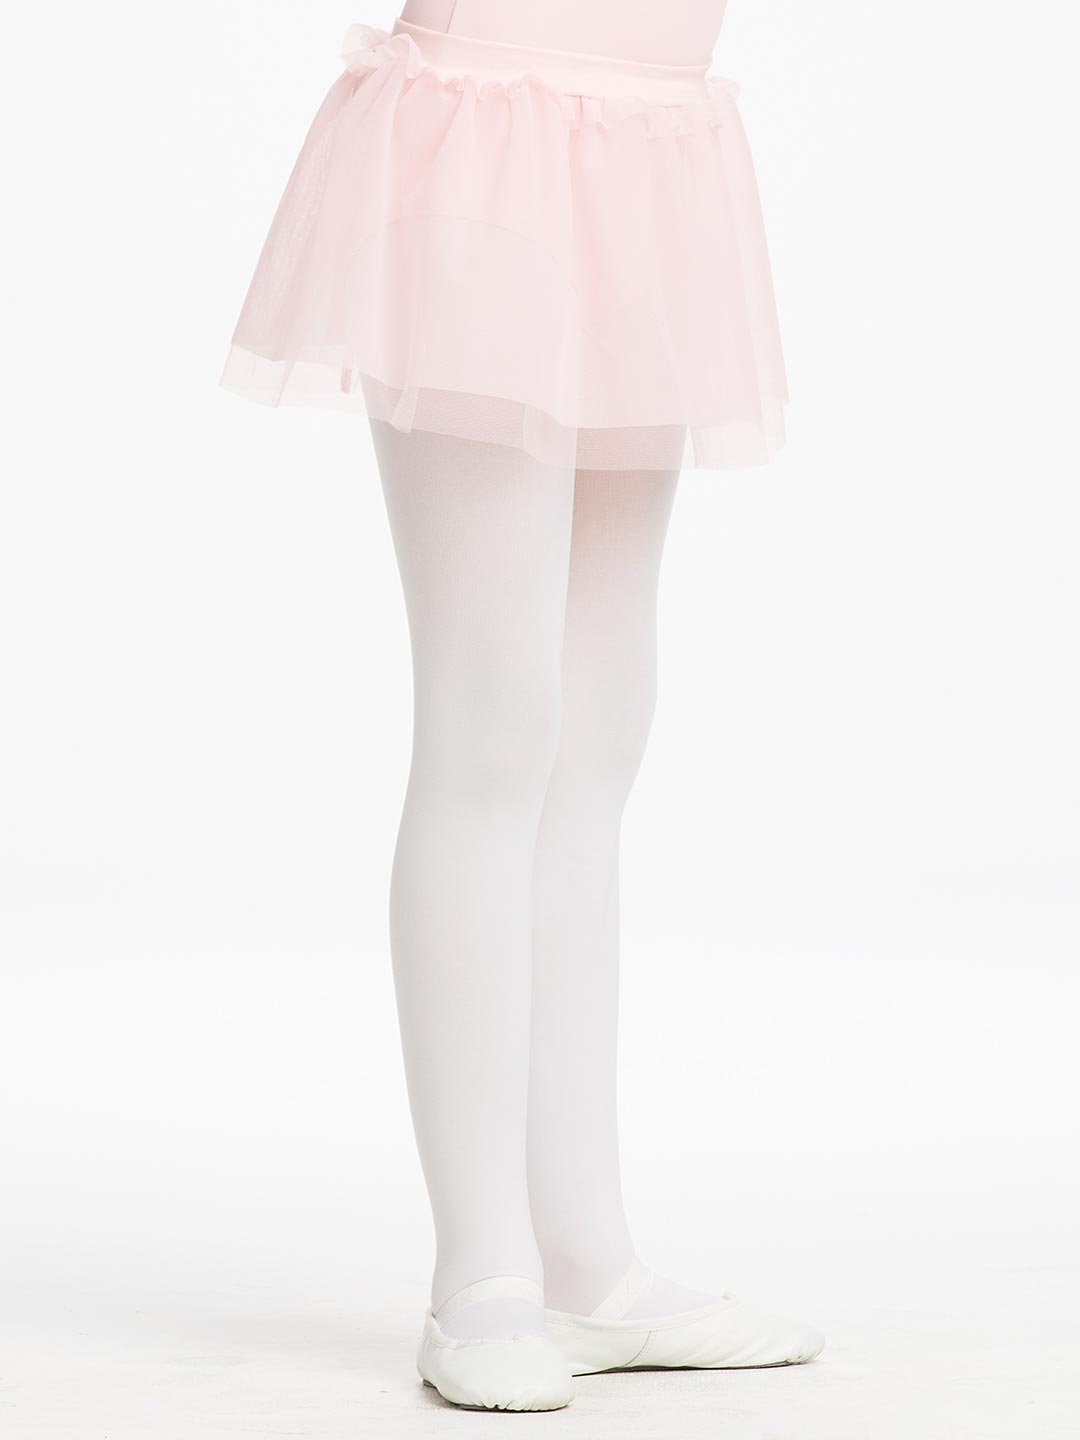 Ruffle Pull on Skirt - Girls